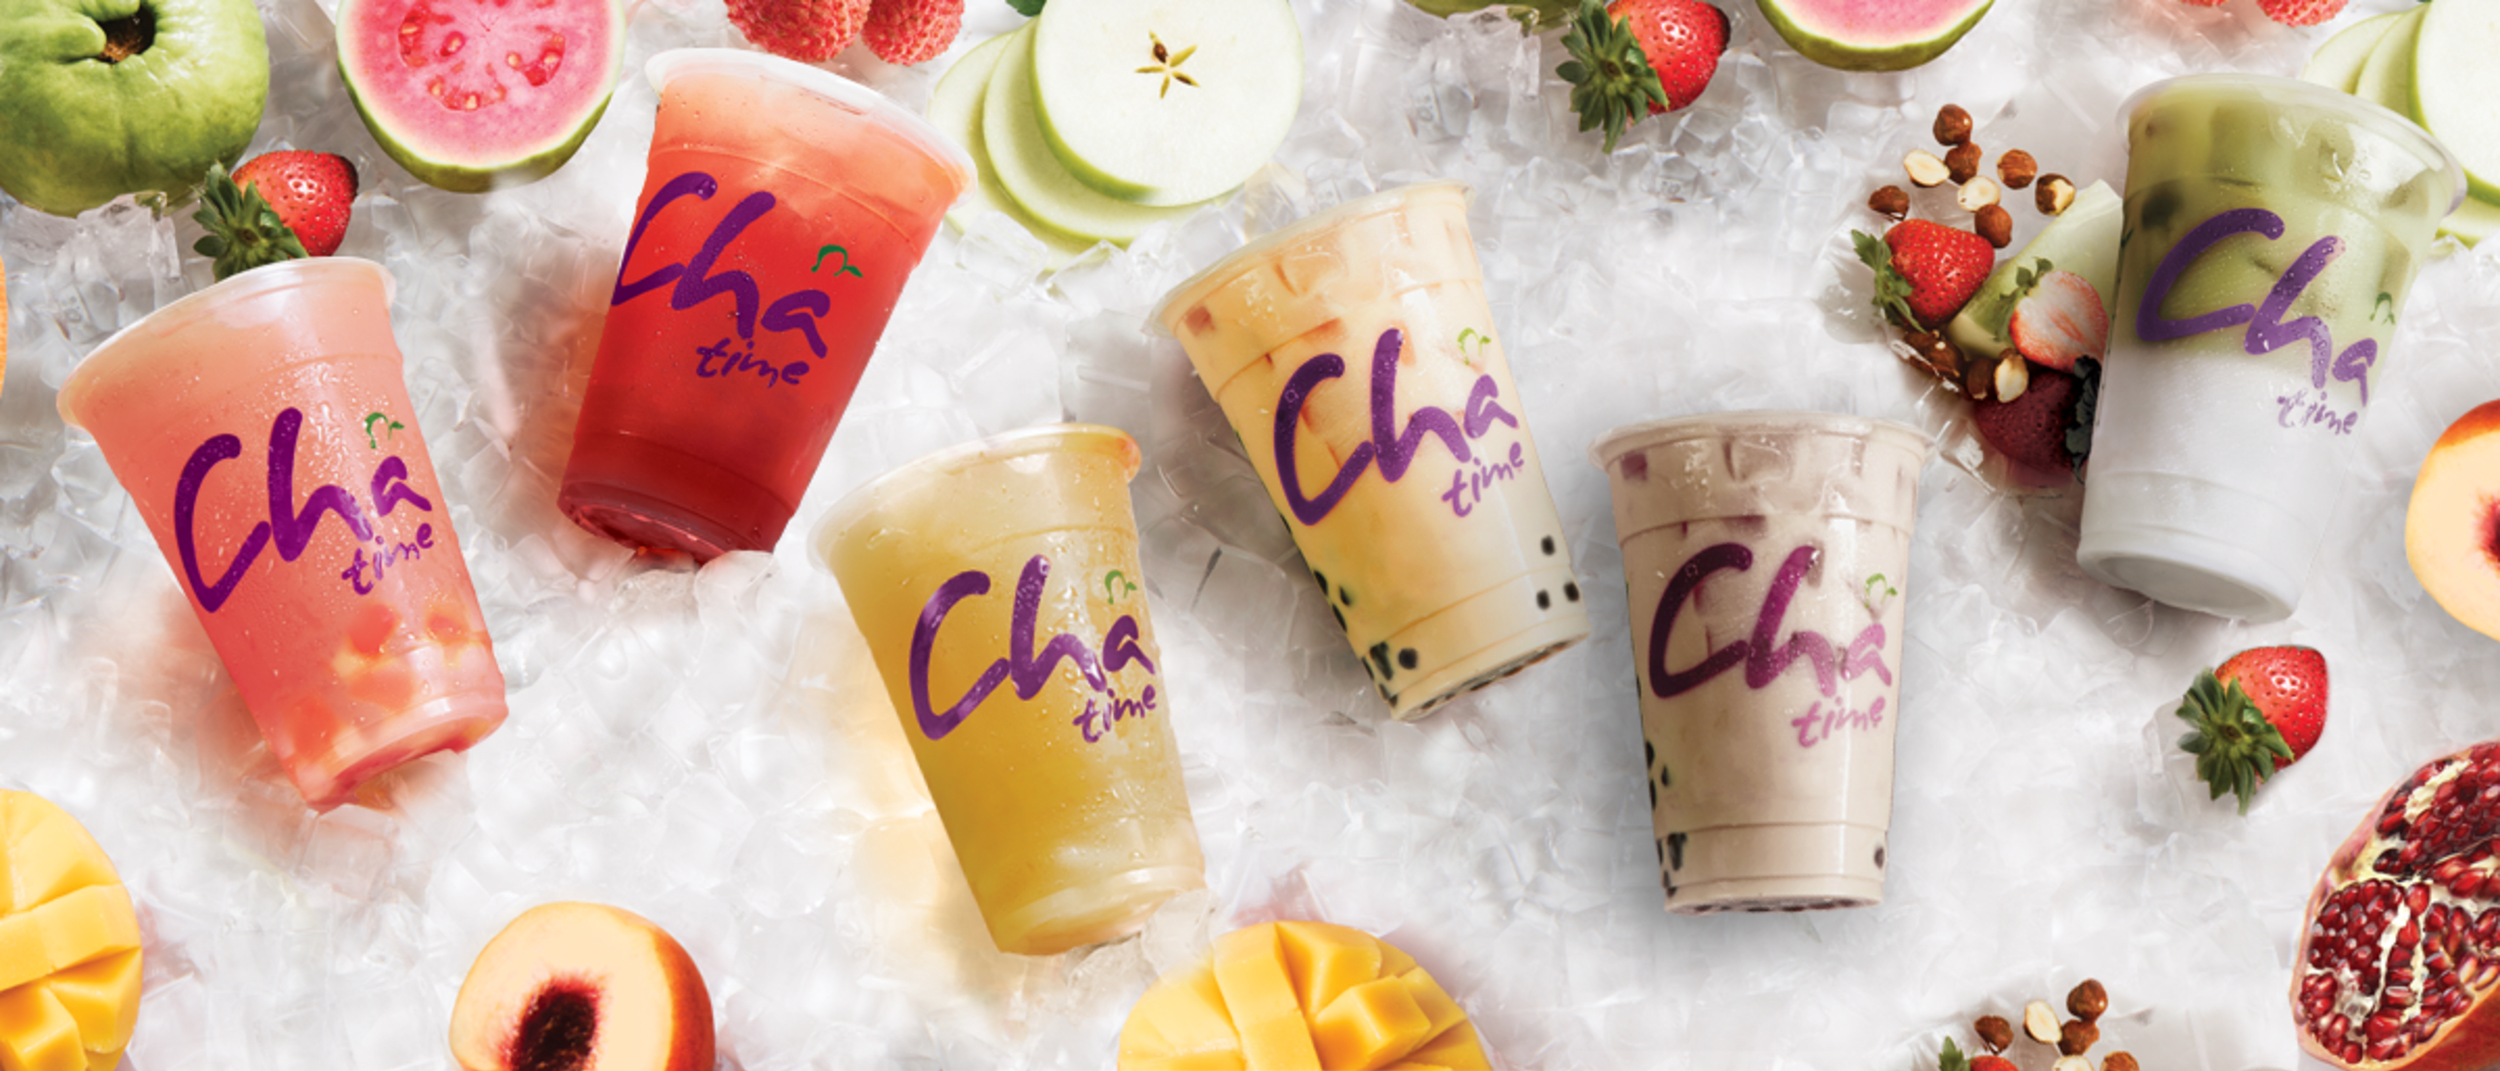 Chatime: free tea to redheads in celebration of the Royal Wedding